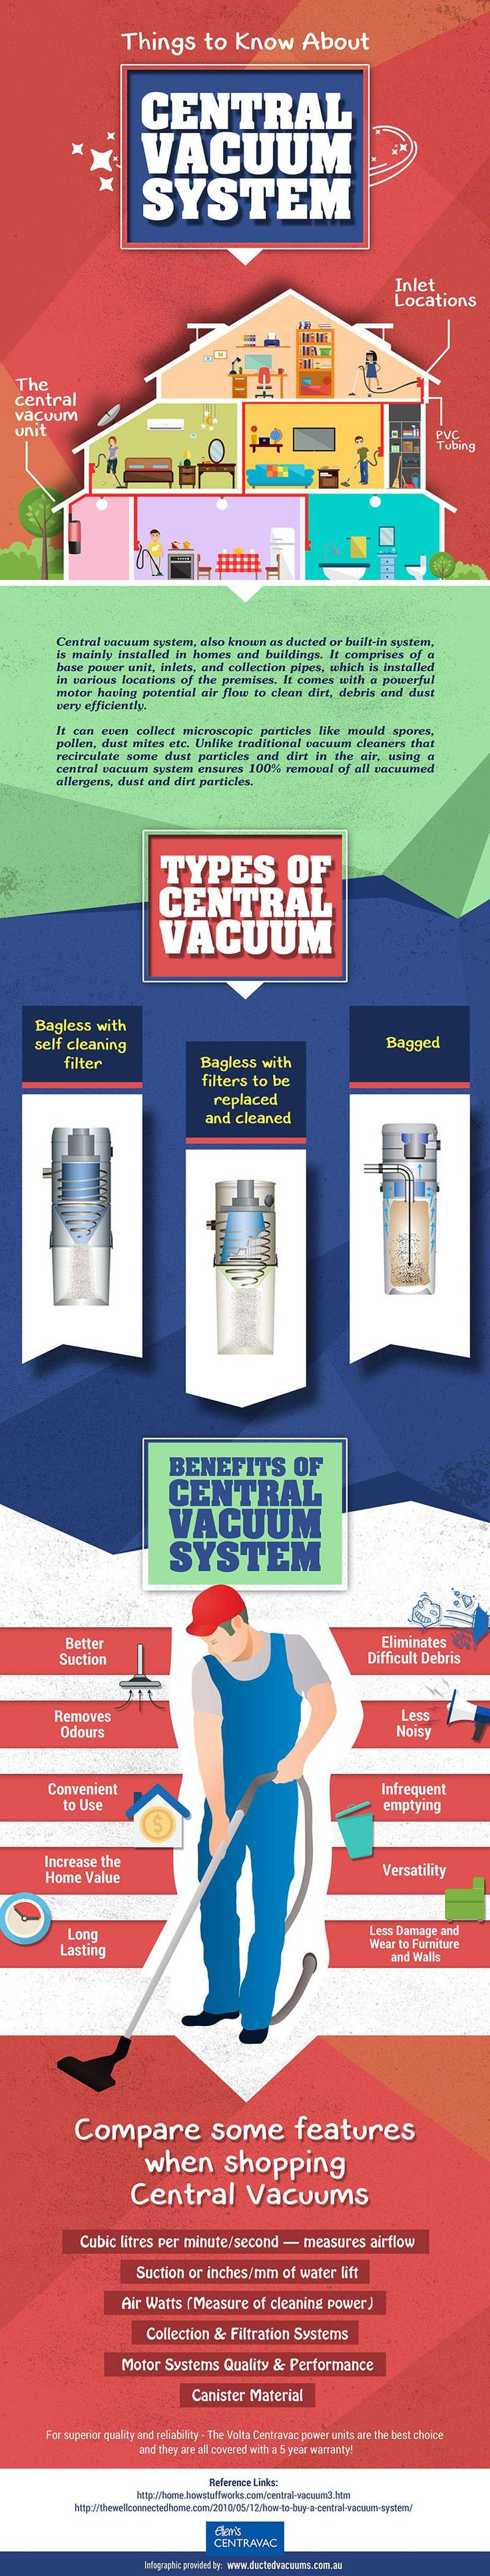 What is Central Vacuum System and how it works?